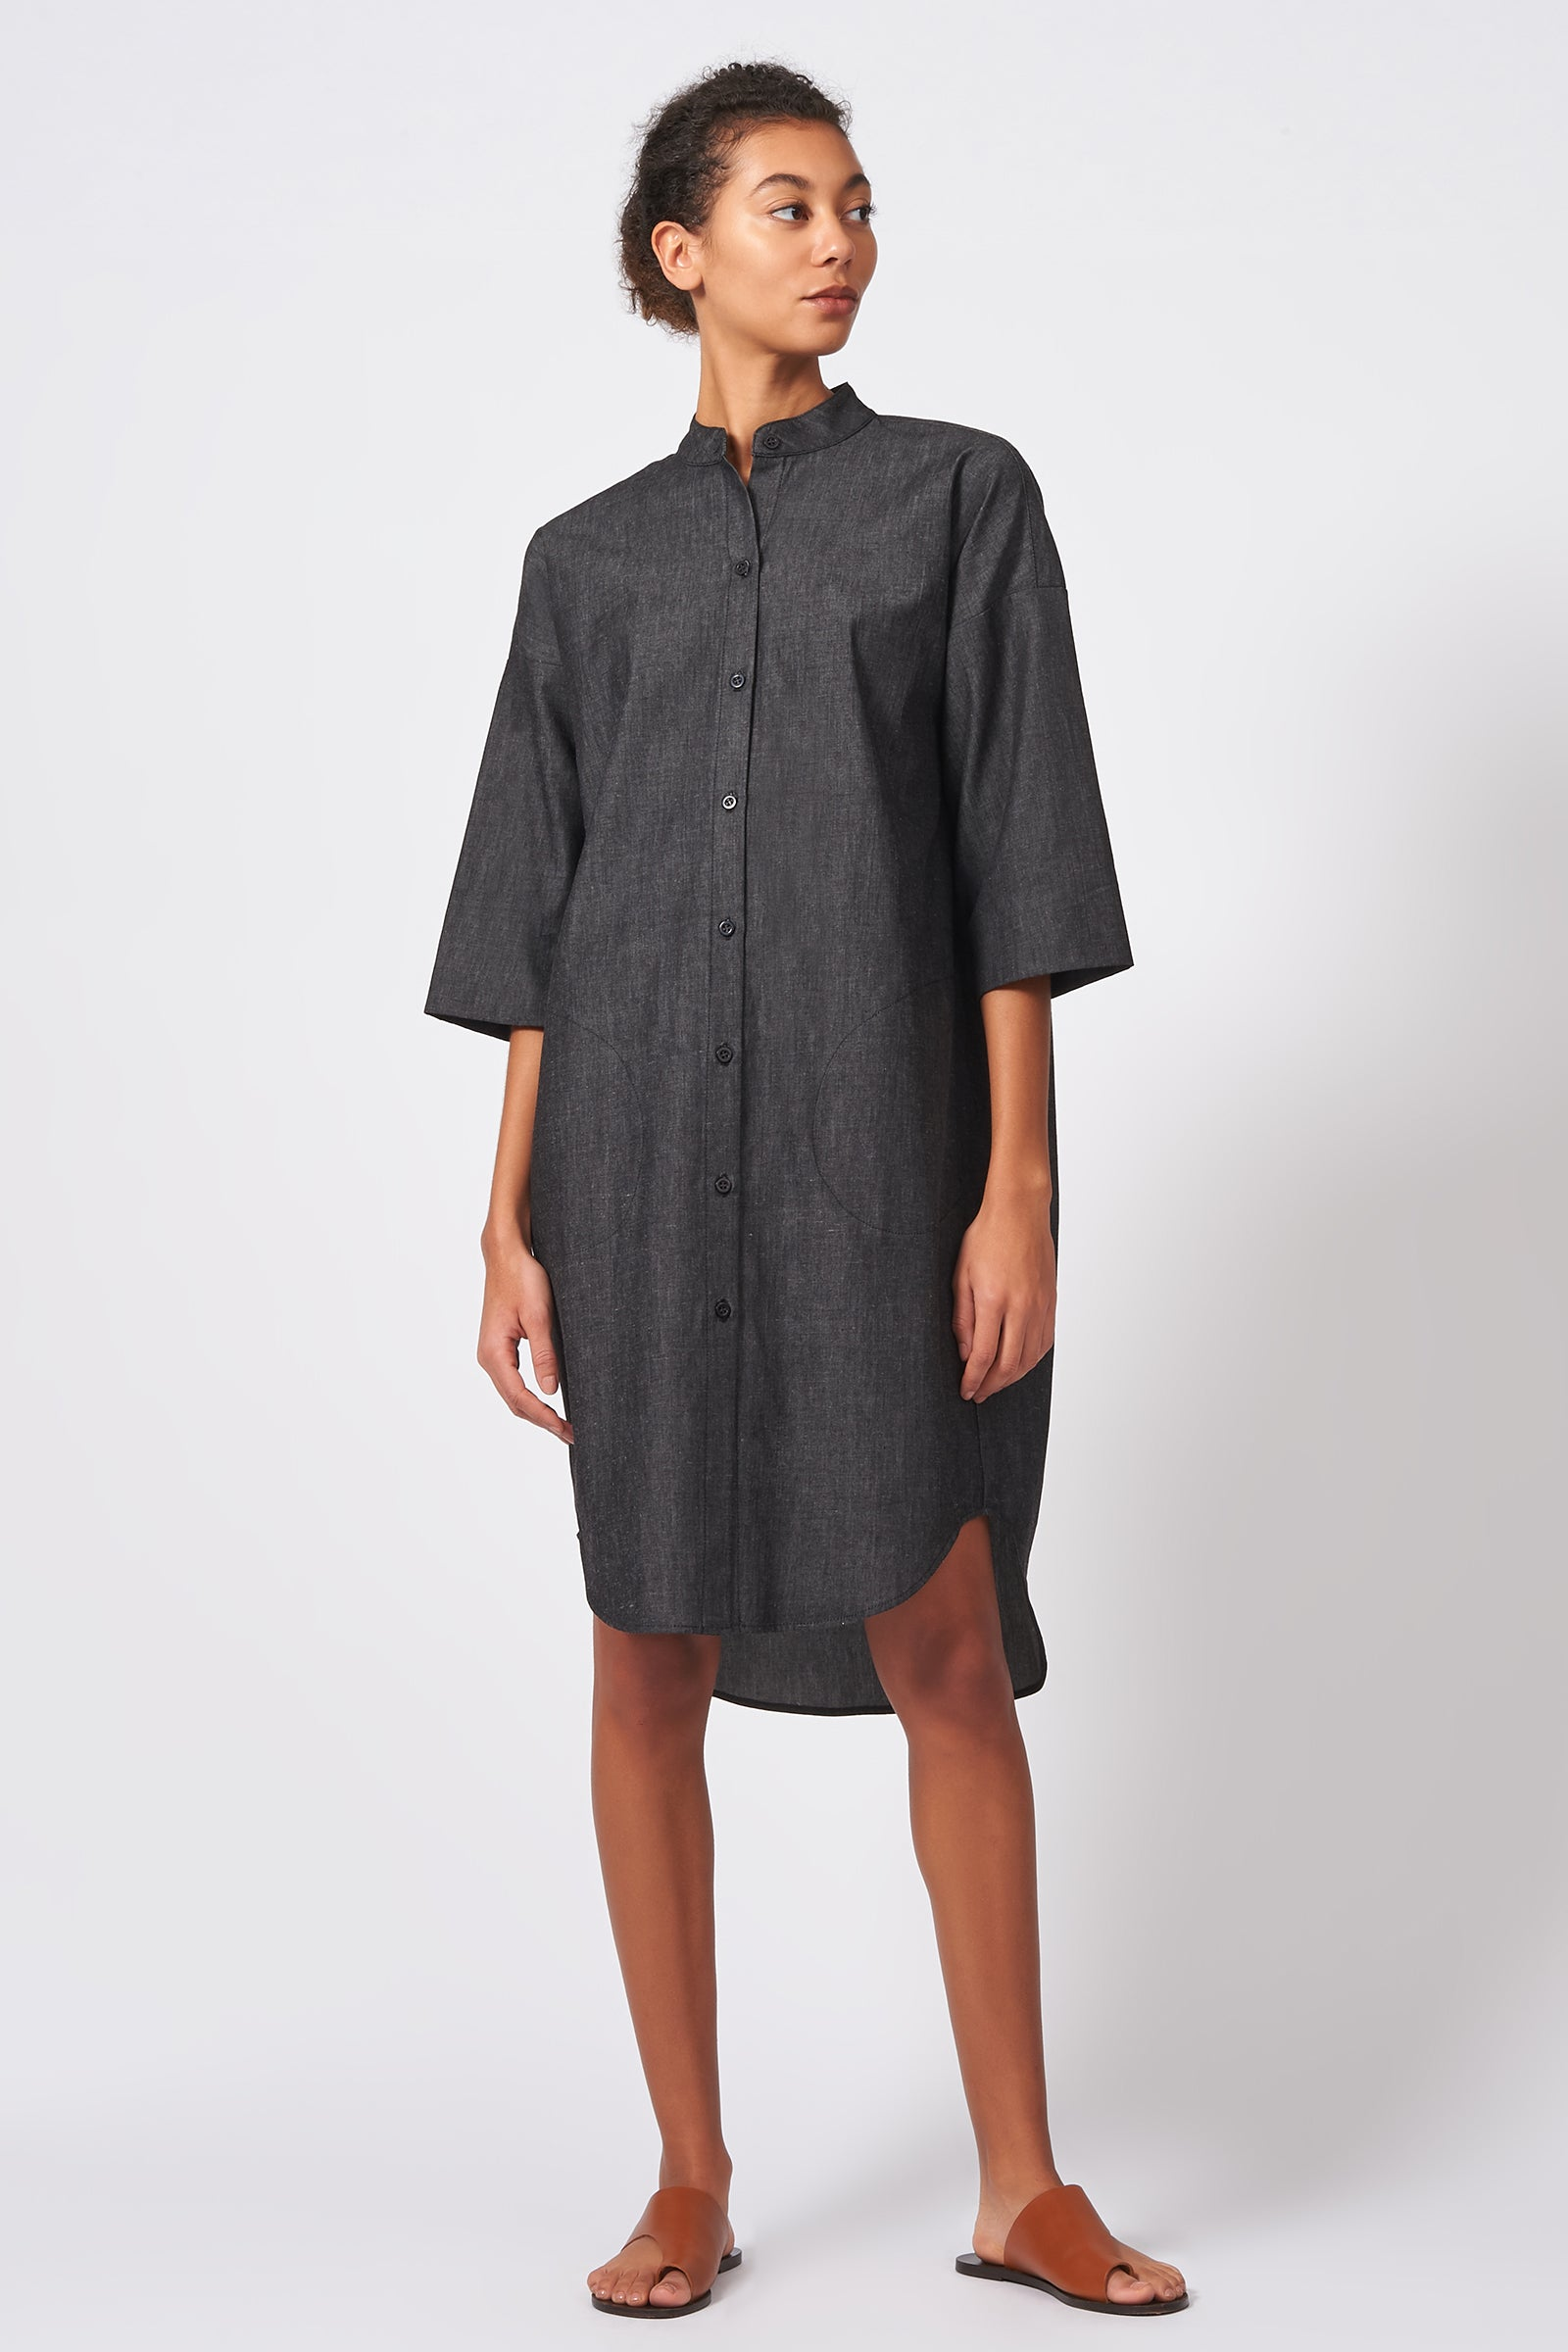 Kal Rieman Drop Sleeve Shirt Dress in Dark Denim on Model Front Full View